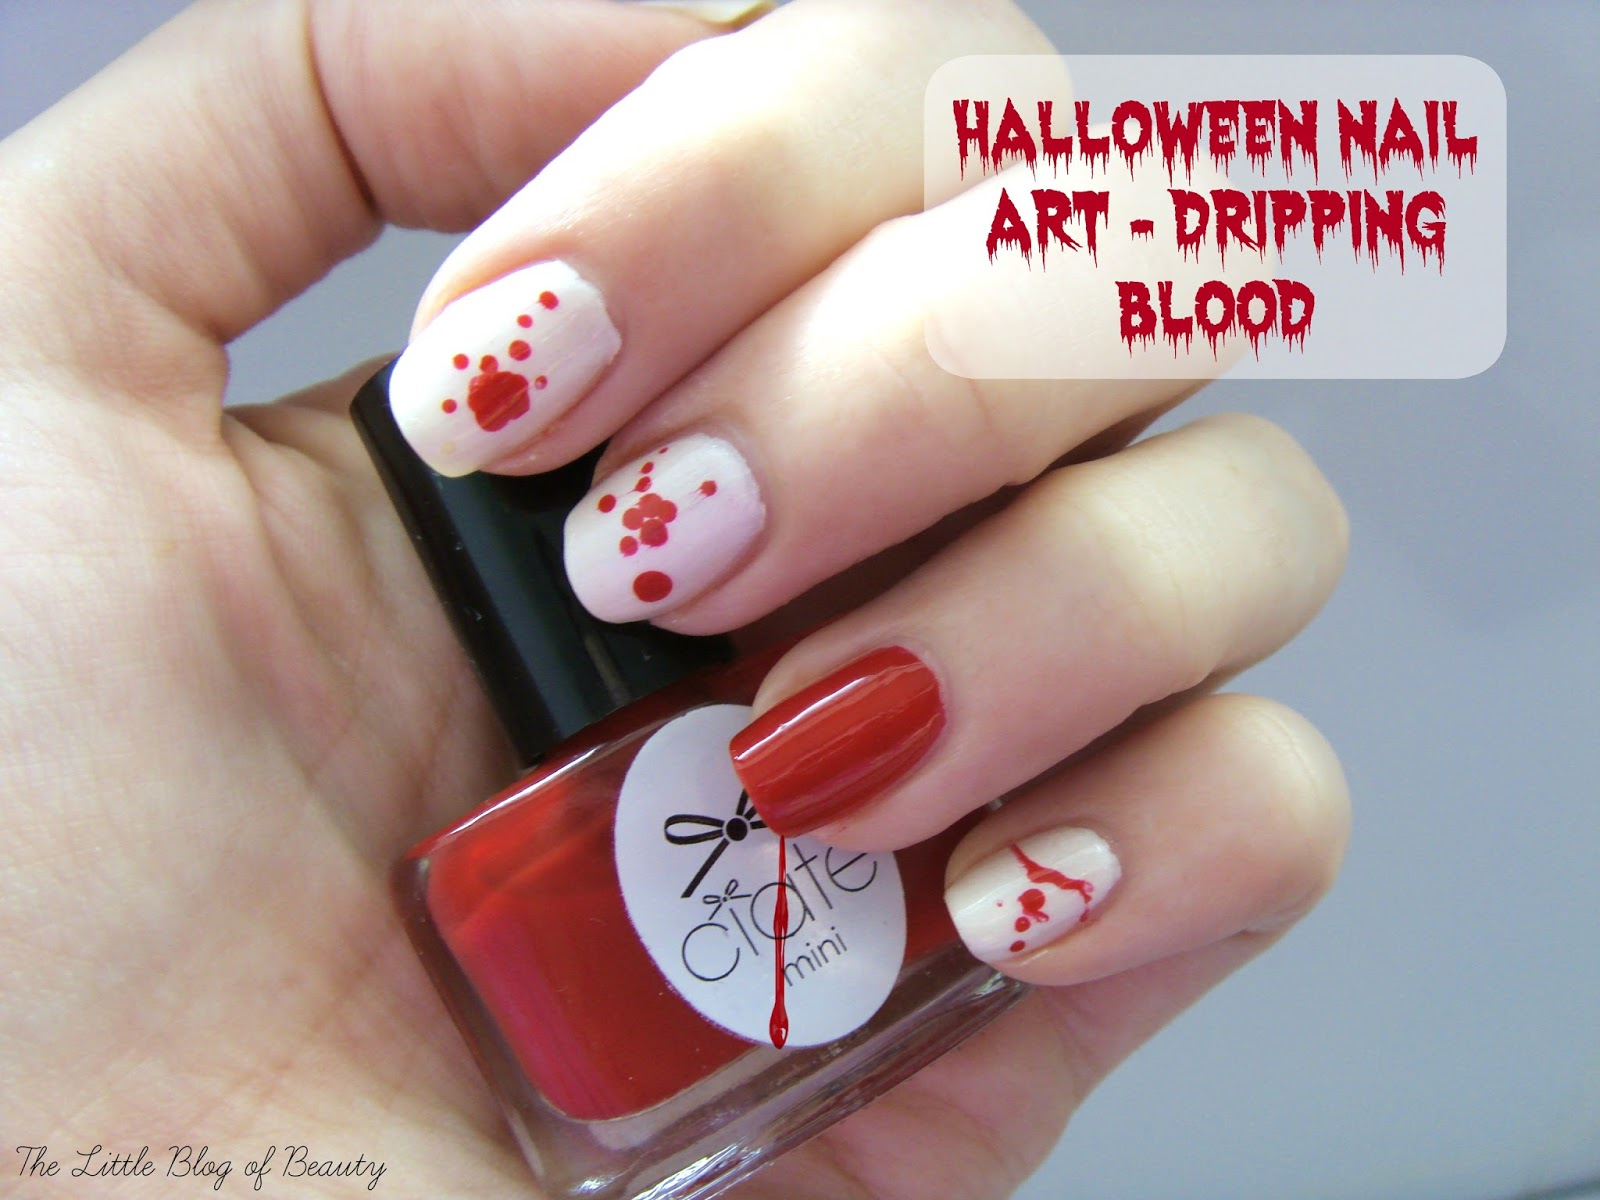 Halloween nail art dripping blood the little blog of beauty halloween nail art dripping blood prinsesfo Choice Image